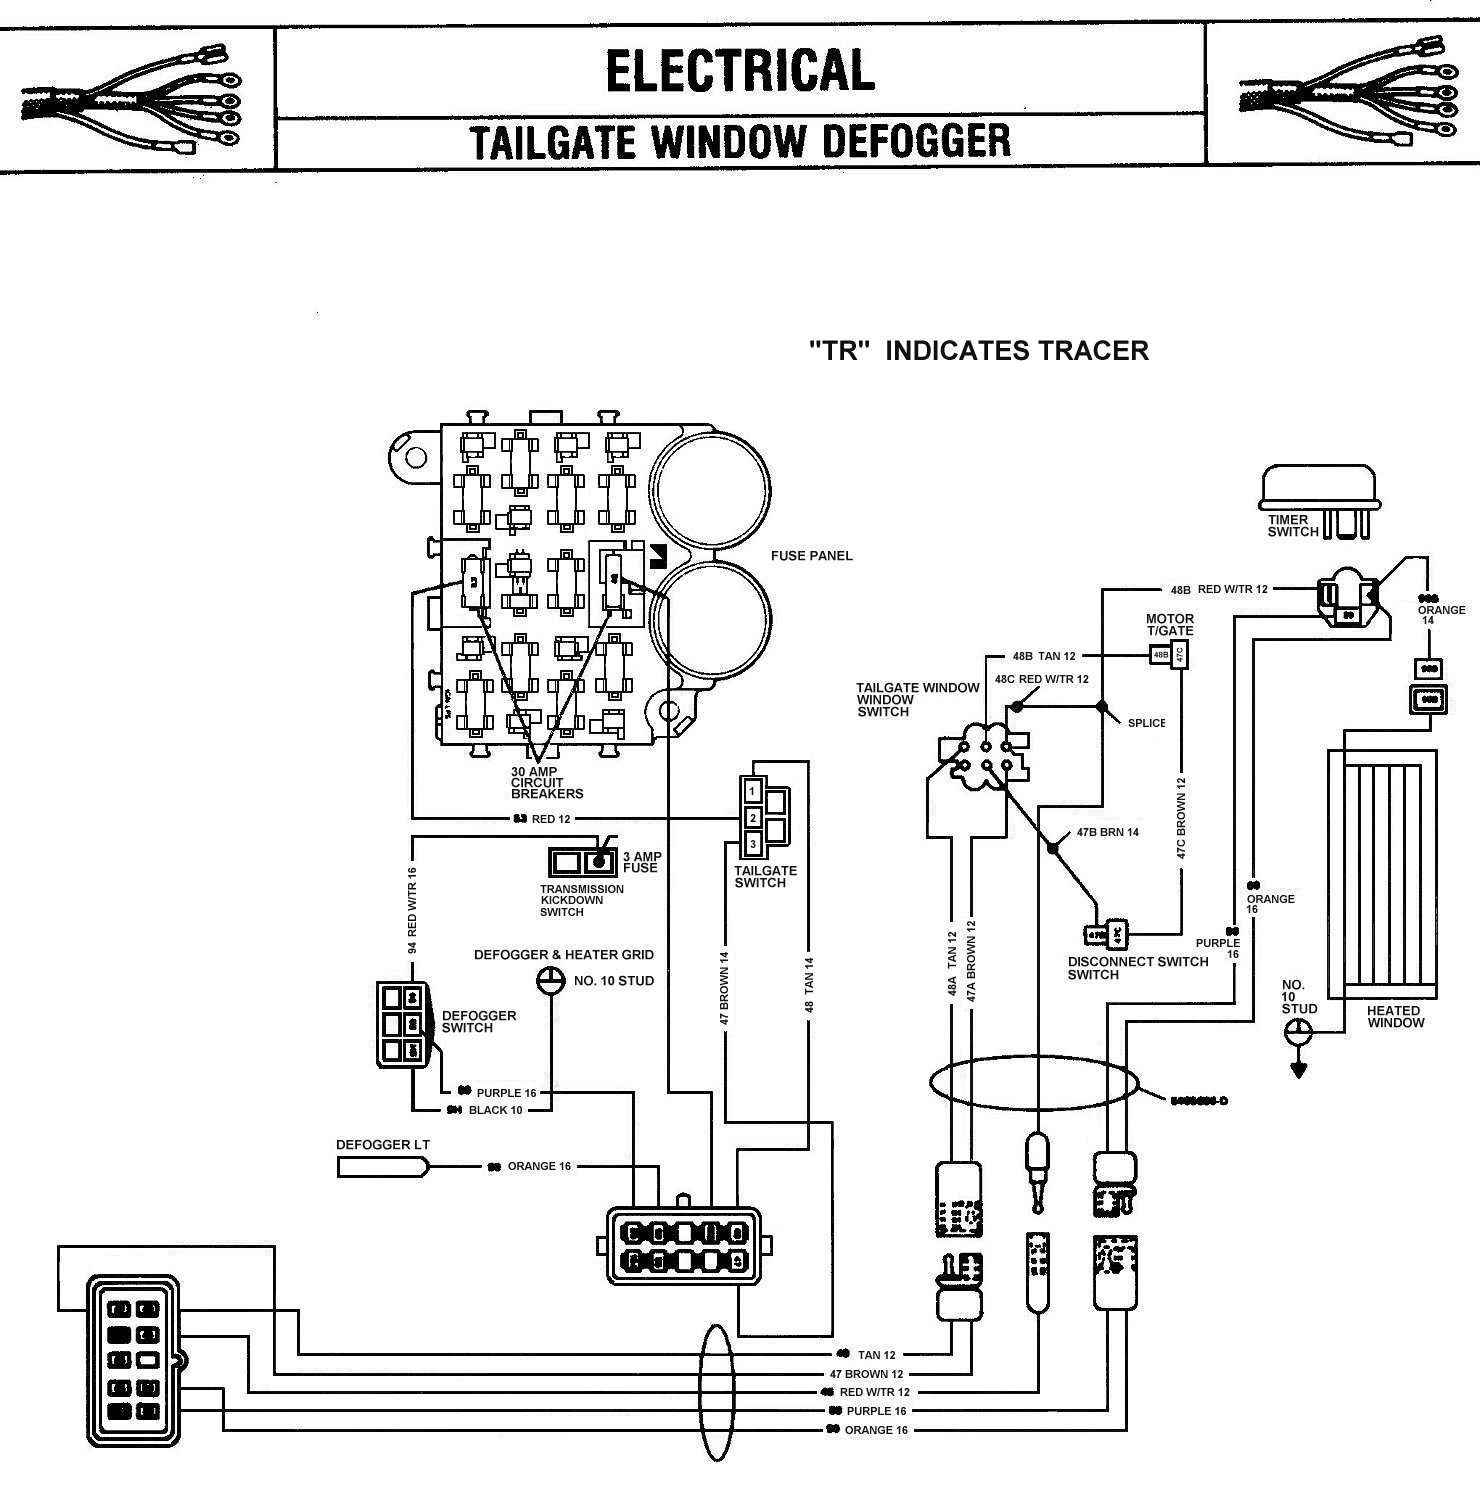 1985 chevy truck wiring intrumental